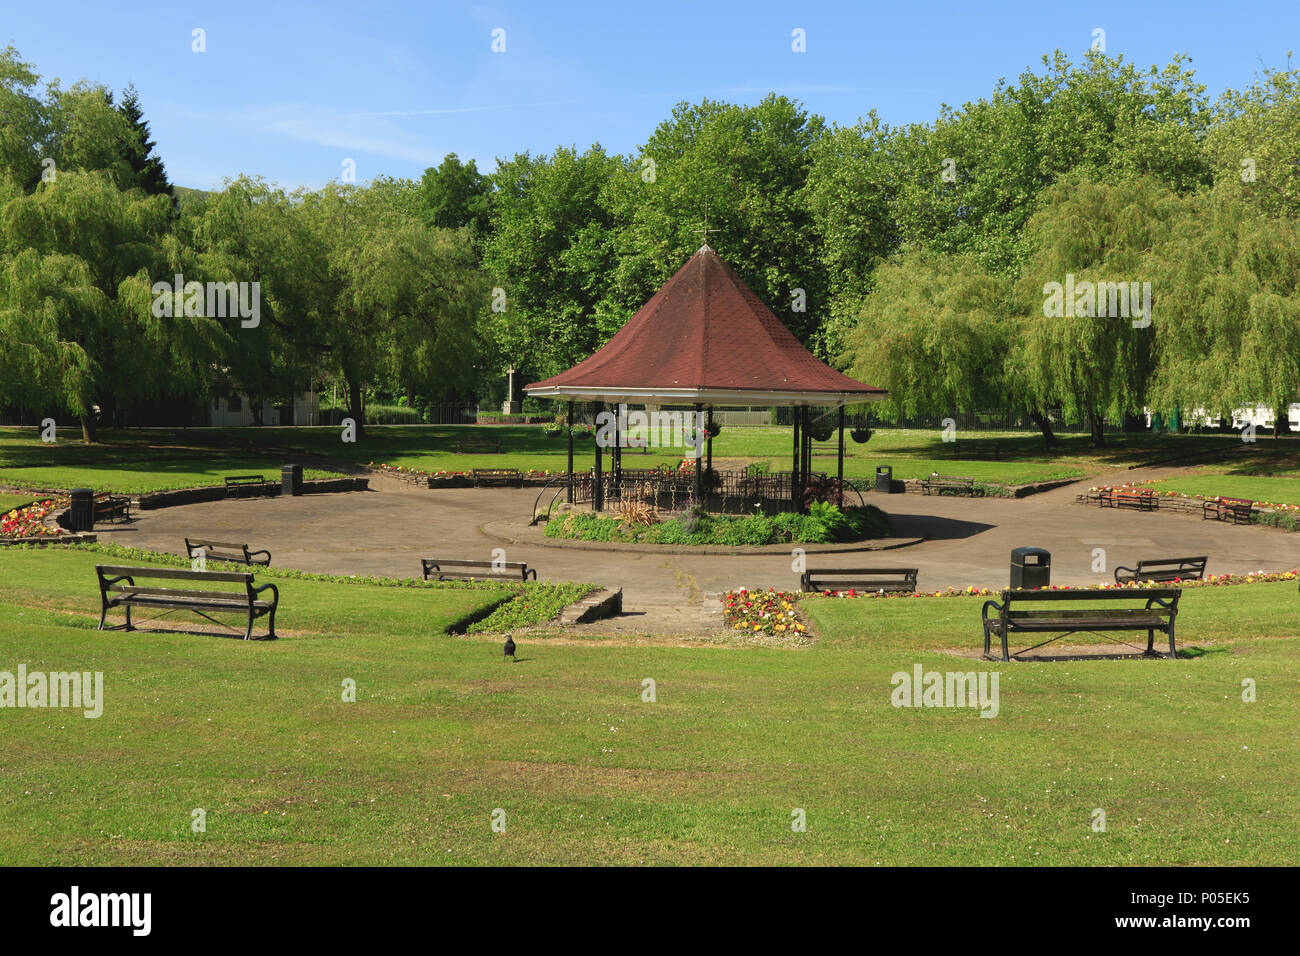 The Bandstand, Ynysangharad Park, Pontypridd, South Wales, UK - Stock Image